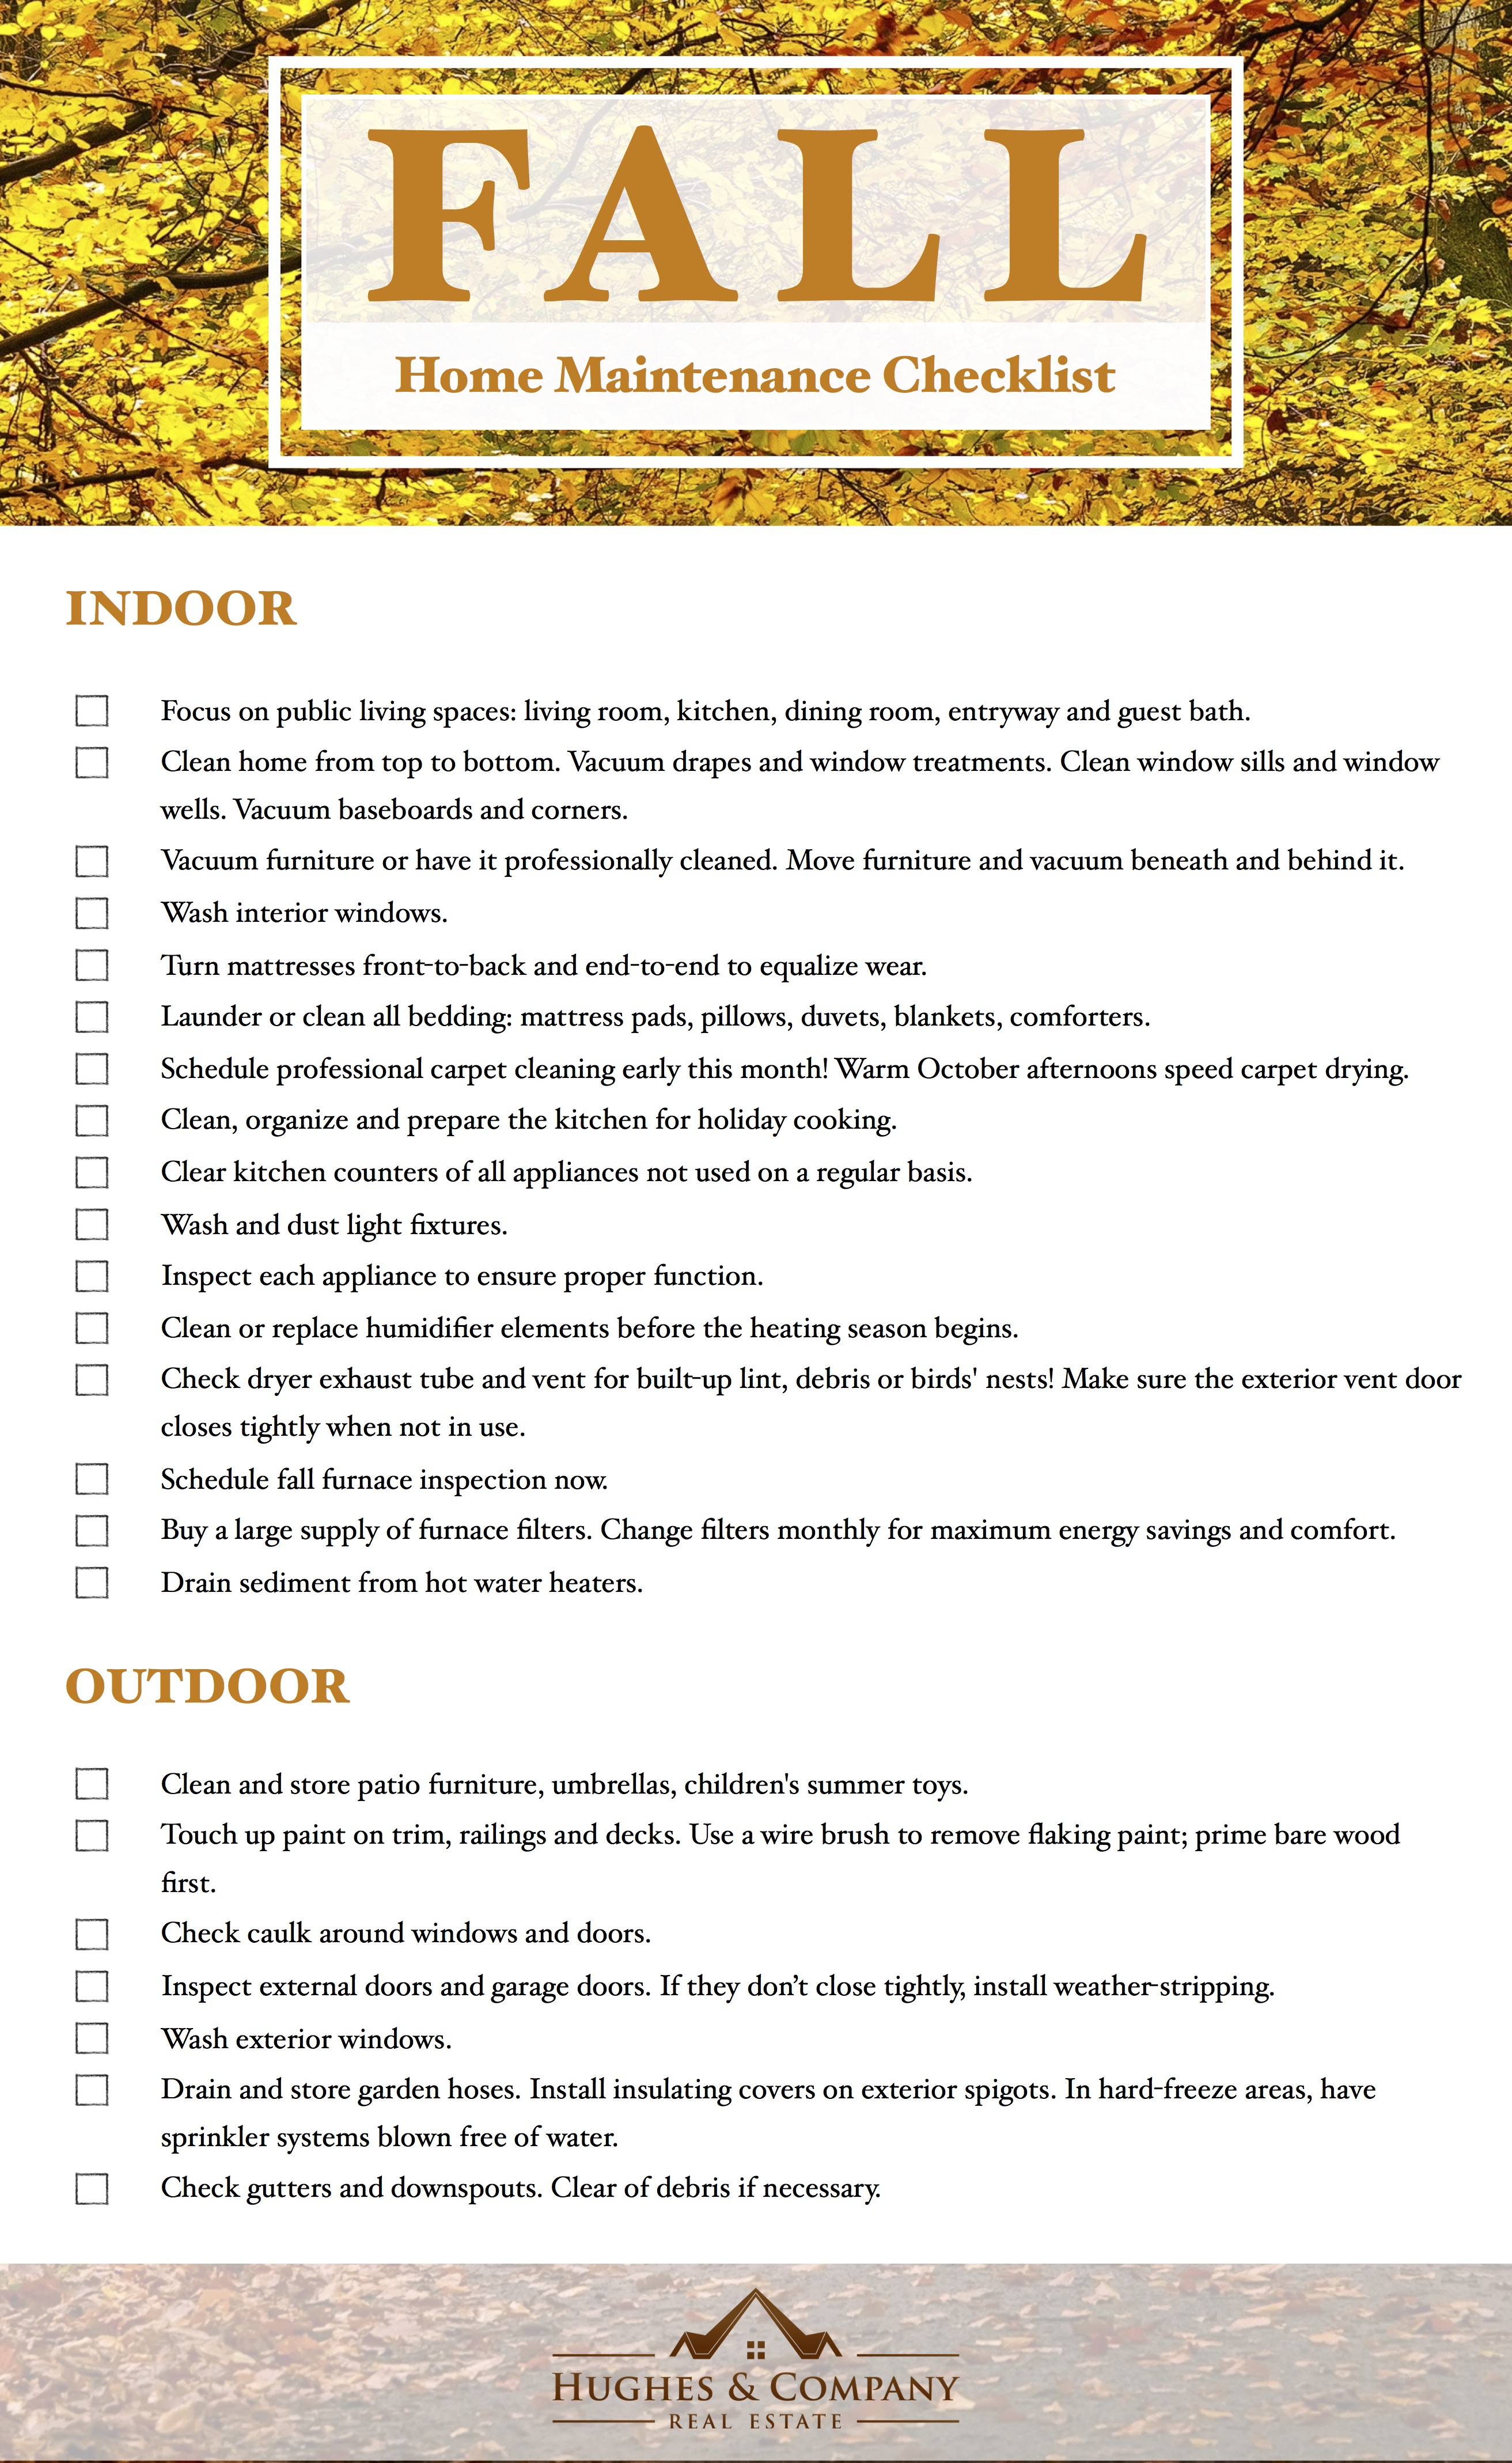 Fall Home Maintenance and Curb Appeal Tips Home Maintenance Tips on home repair help, home recycling tips, photography tips, home remodeling tips, home inspection tips, home cleaning tips, home buying tips, home insurance tips, home protection tips, home heating tips, home fix-it tips, home repair tips, home energy tips, home care tips, home safety tips, real estate tips, tips for selling your home, home security tips, home management tips, home decor tips, home design tips, home storage tips, home improvement, home selling tips, home marketing tips,